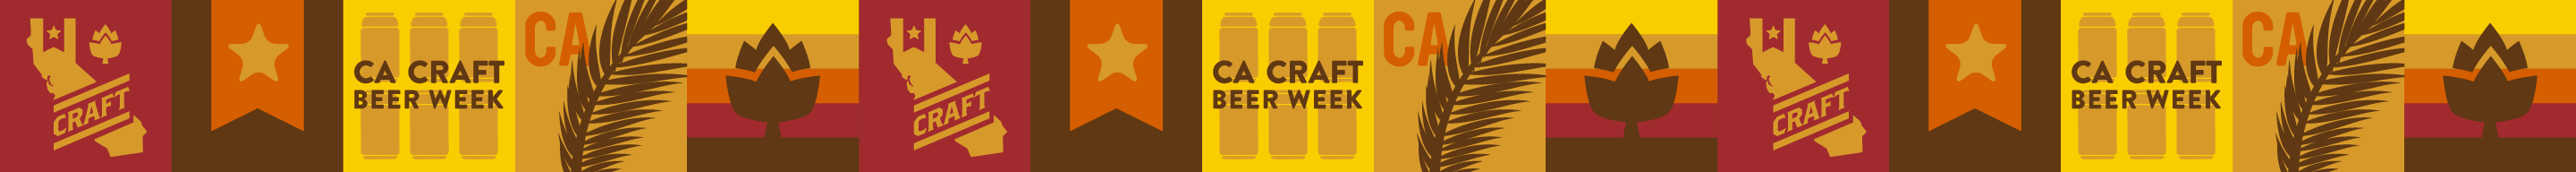 CA Craft Beer Week Banner